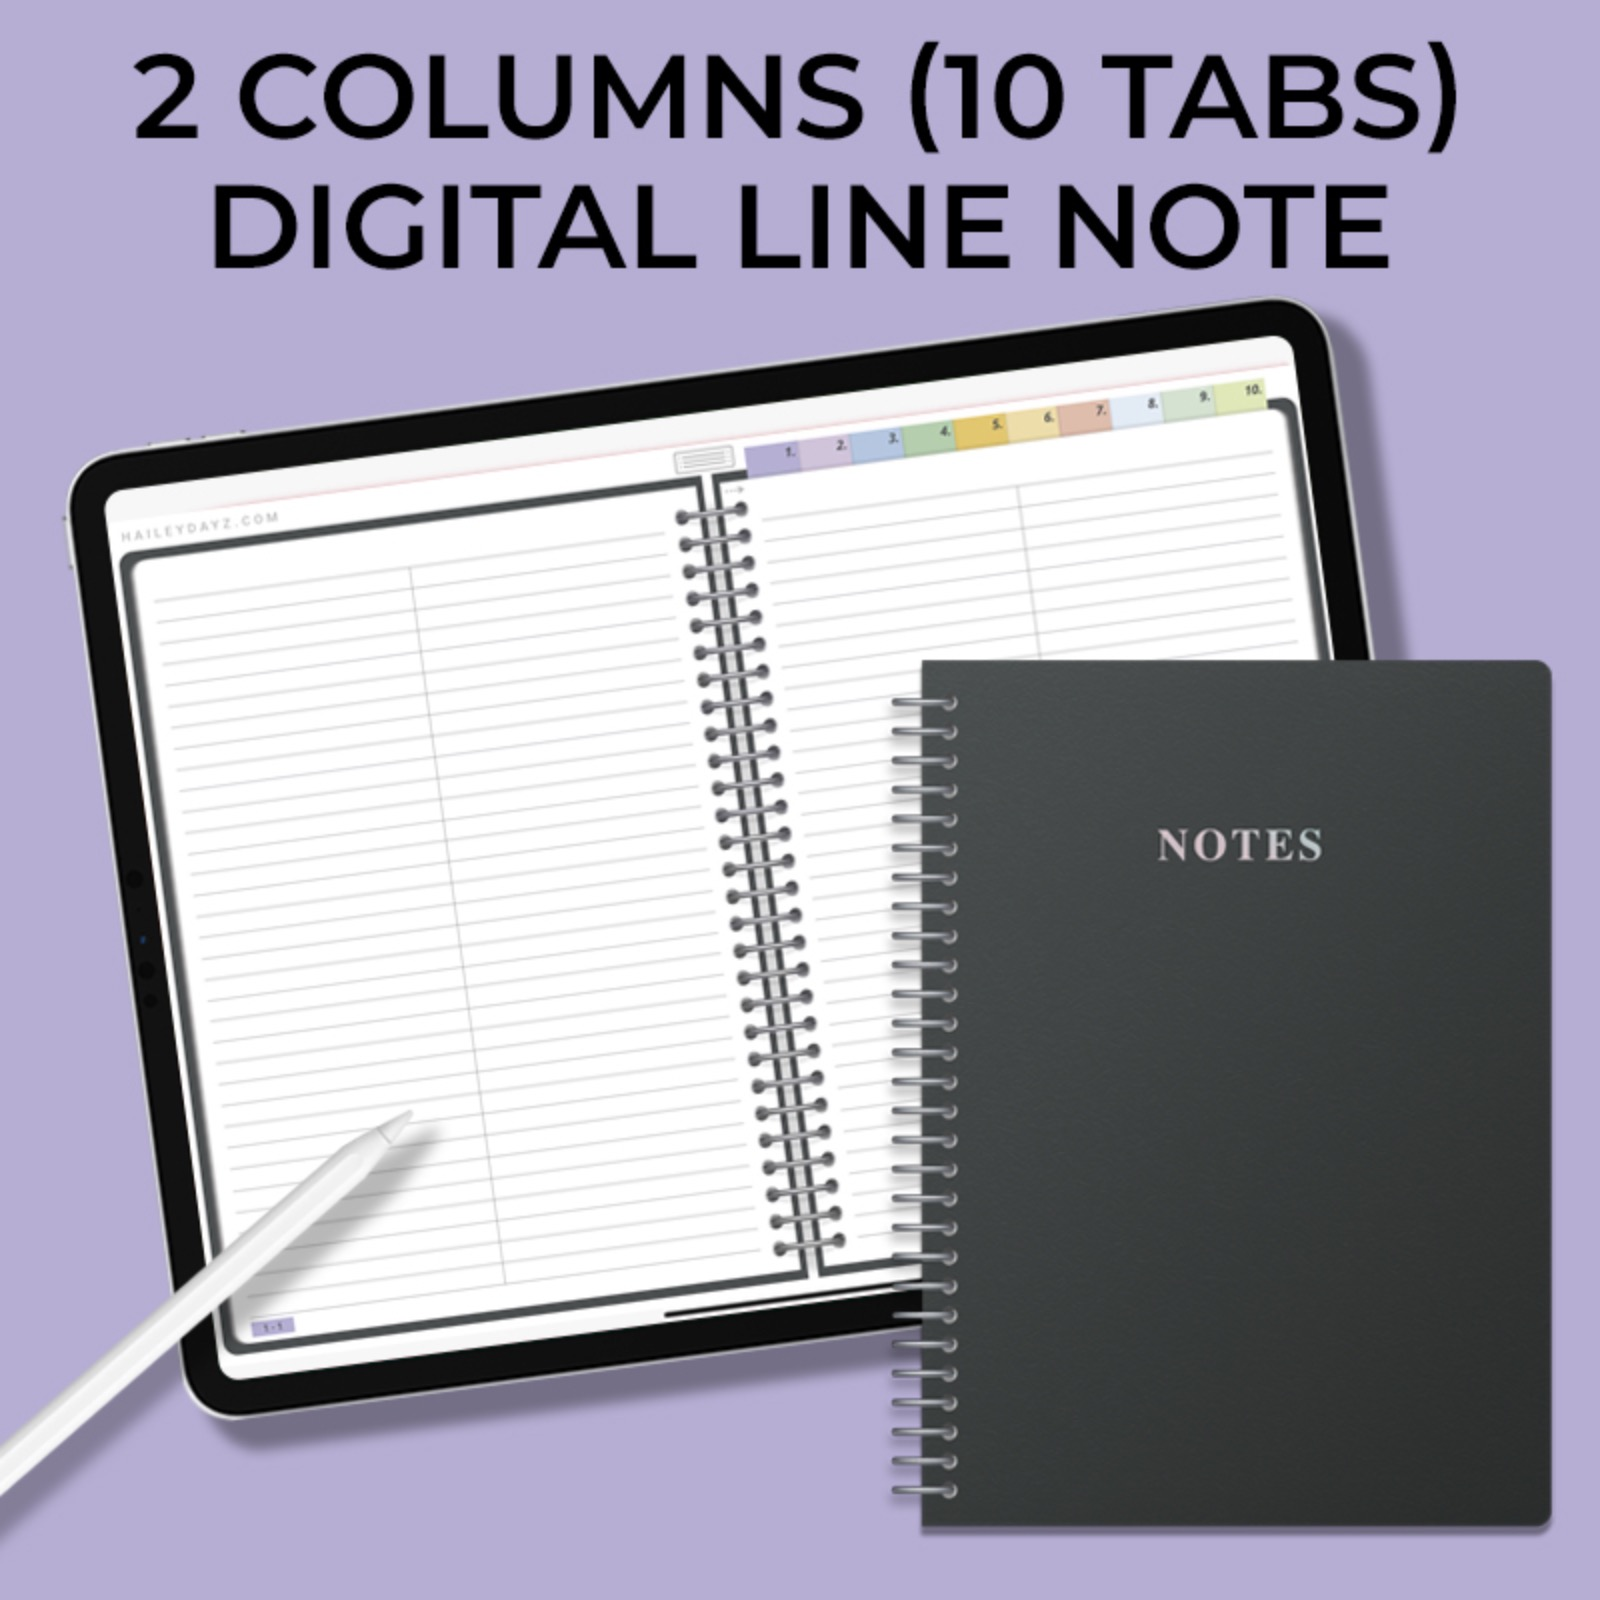 2 Columns Digital Line Note